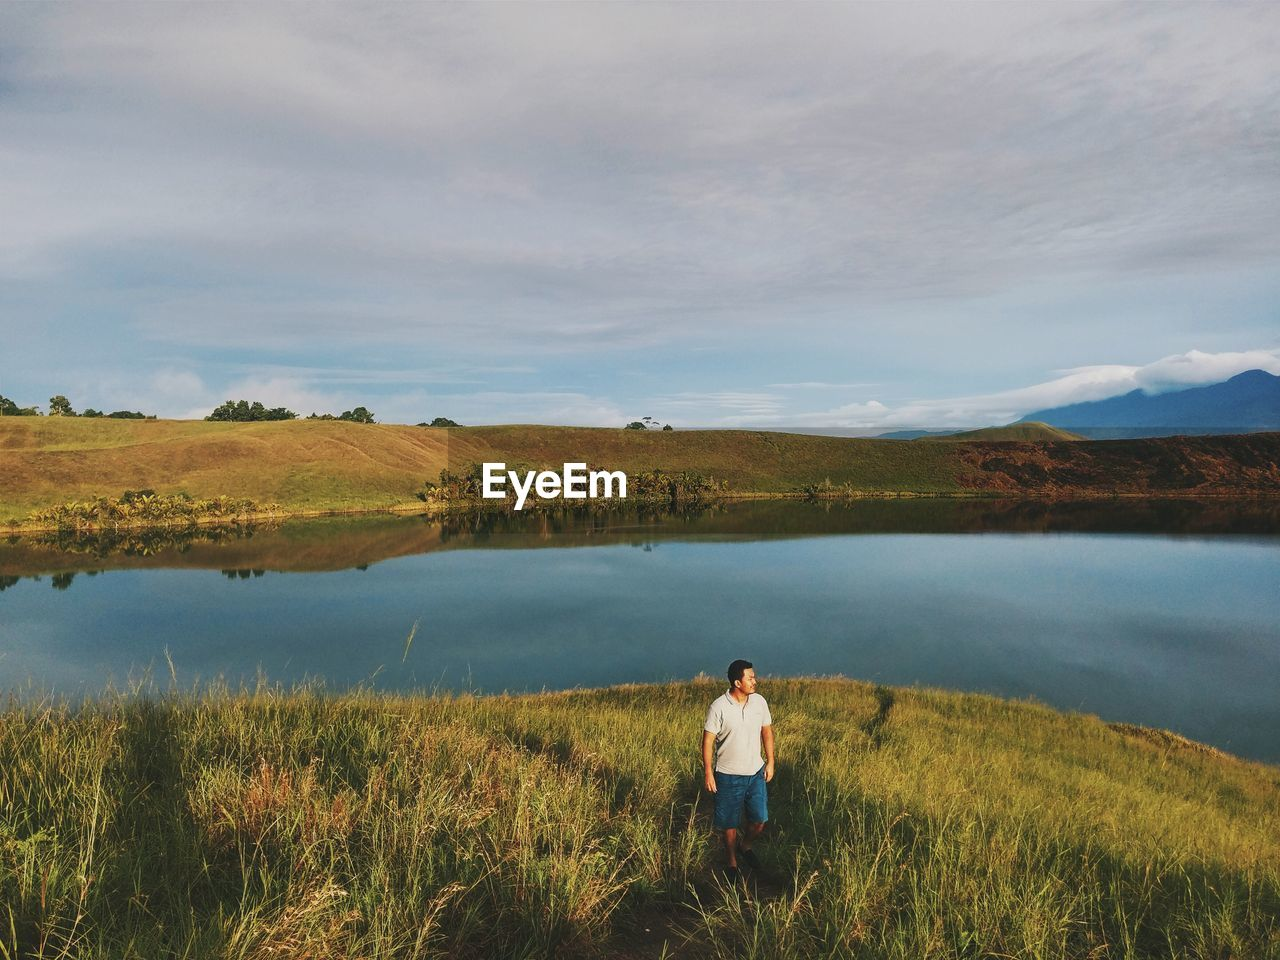 High Angle View Of Man Standing On Grassy Field By Lake Against Cloudy Sky